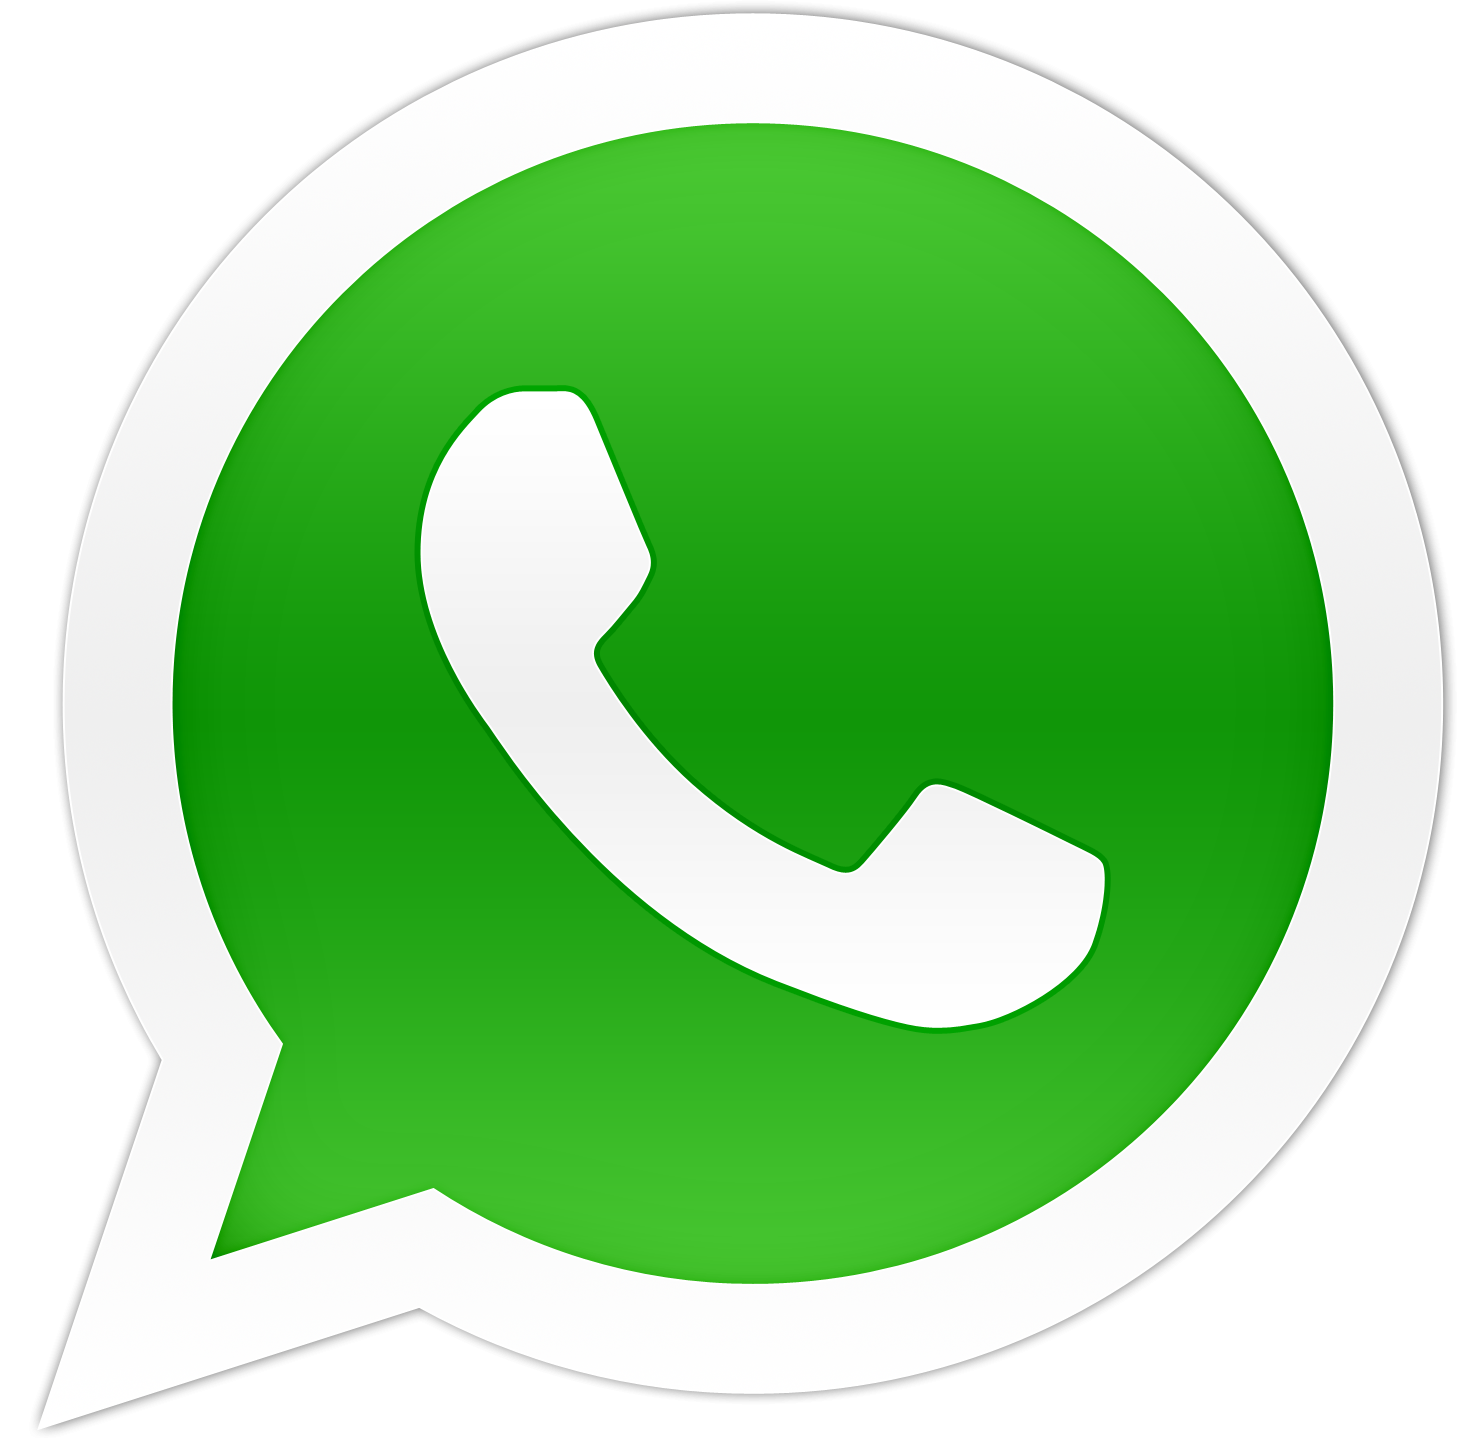 Logo Whatsapp Iphone PNG Free Photo PNG Image